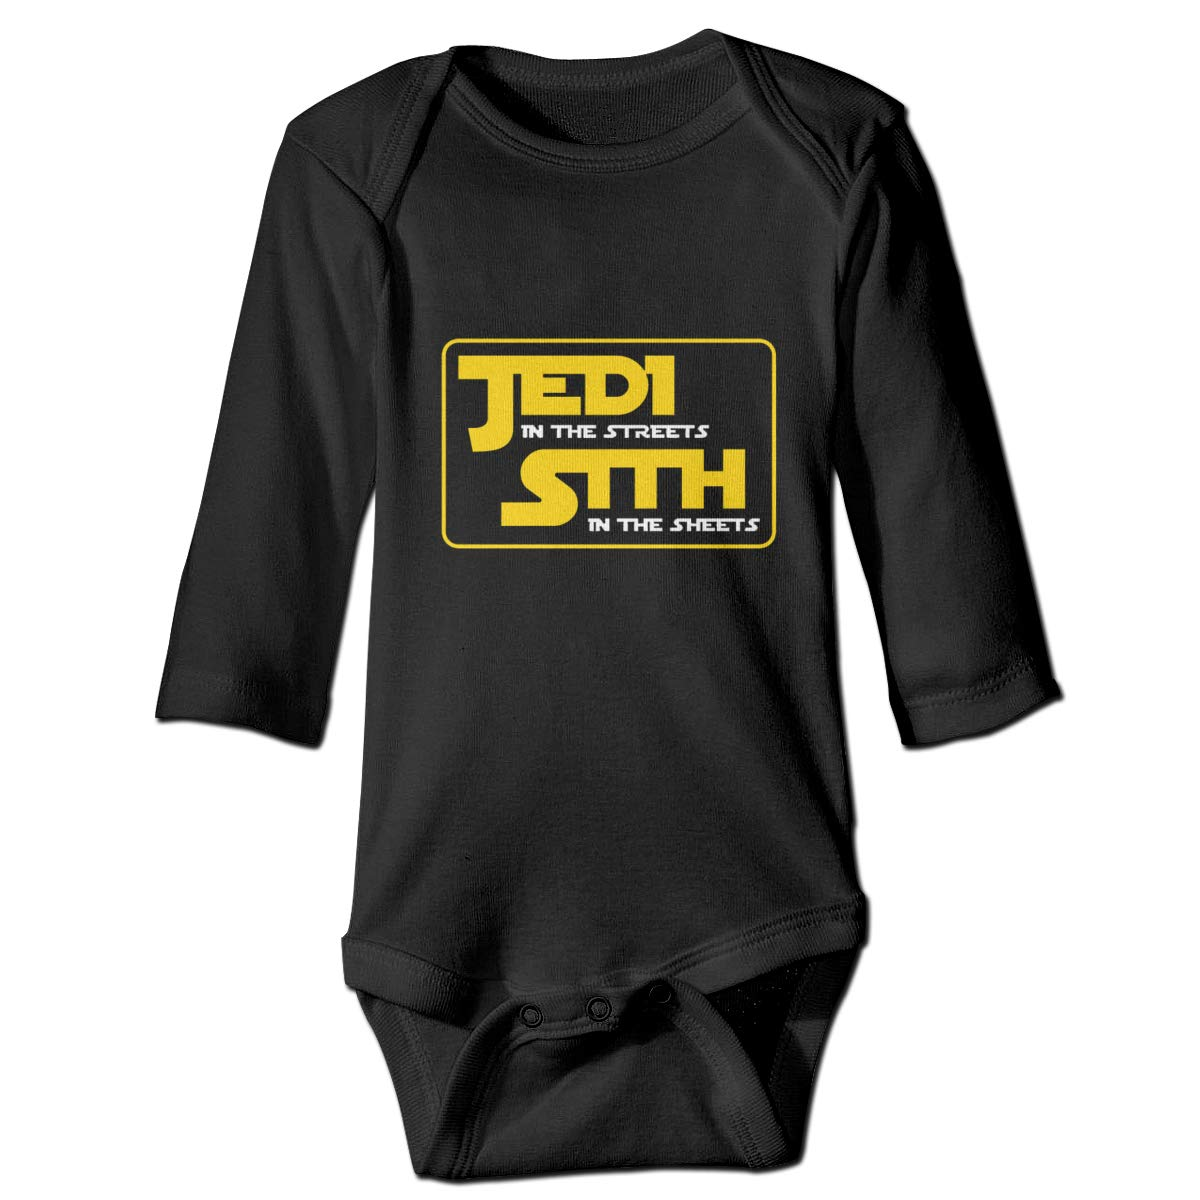 Jedi in The Streets Long Sleeve Baby Romper